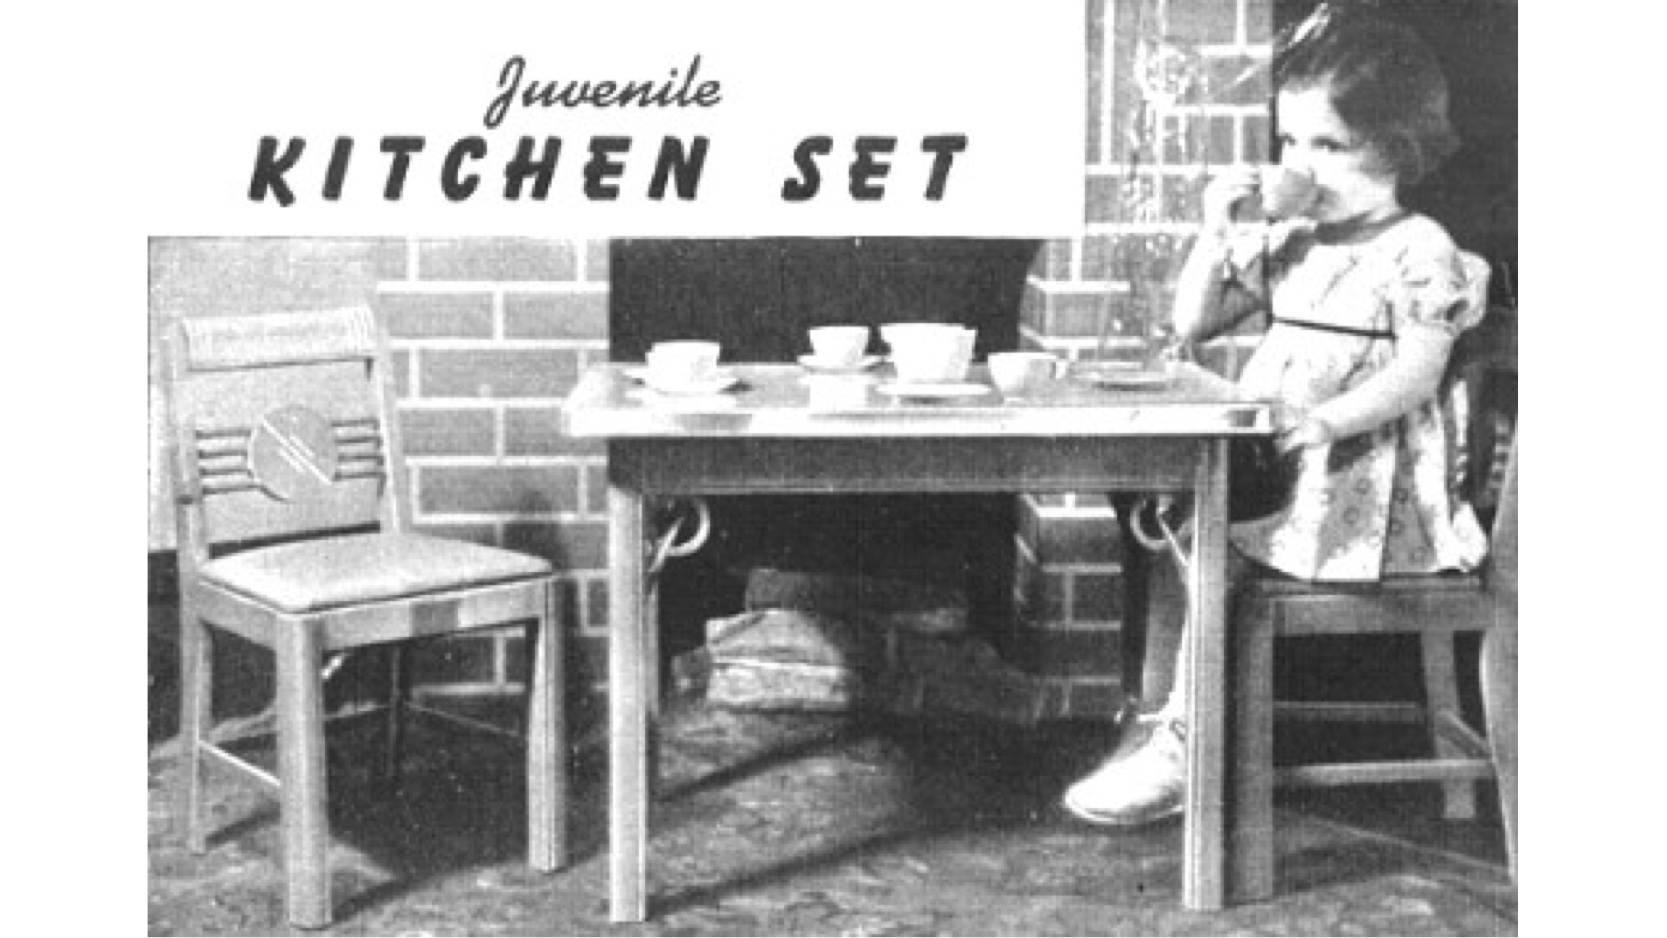 how to make kitchen set at home with boards